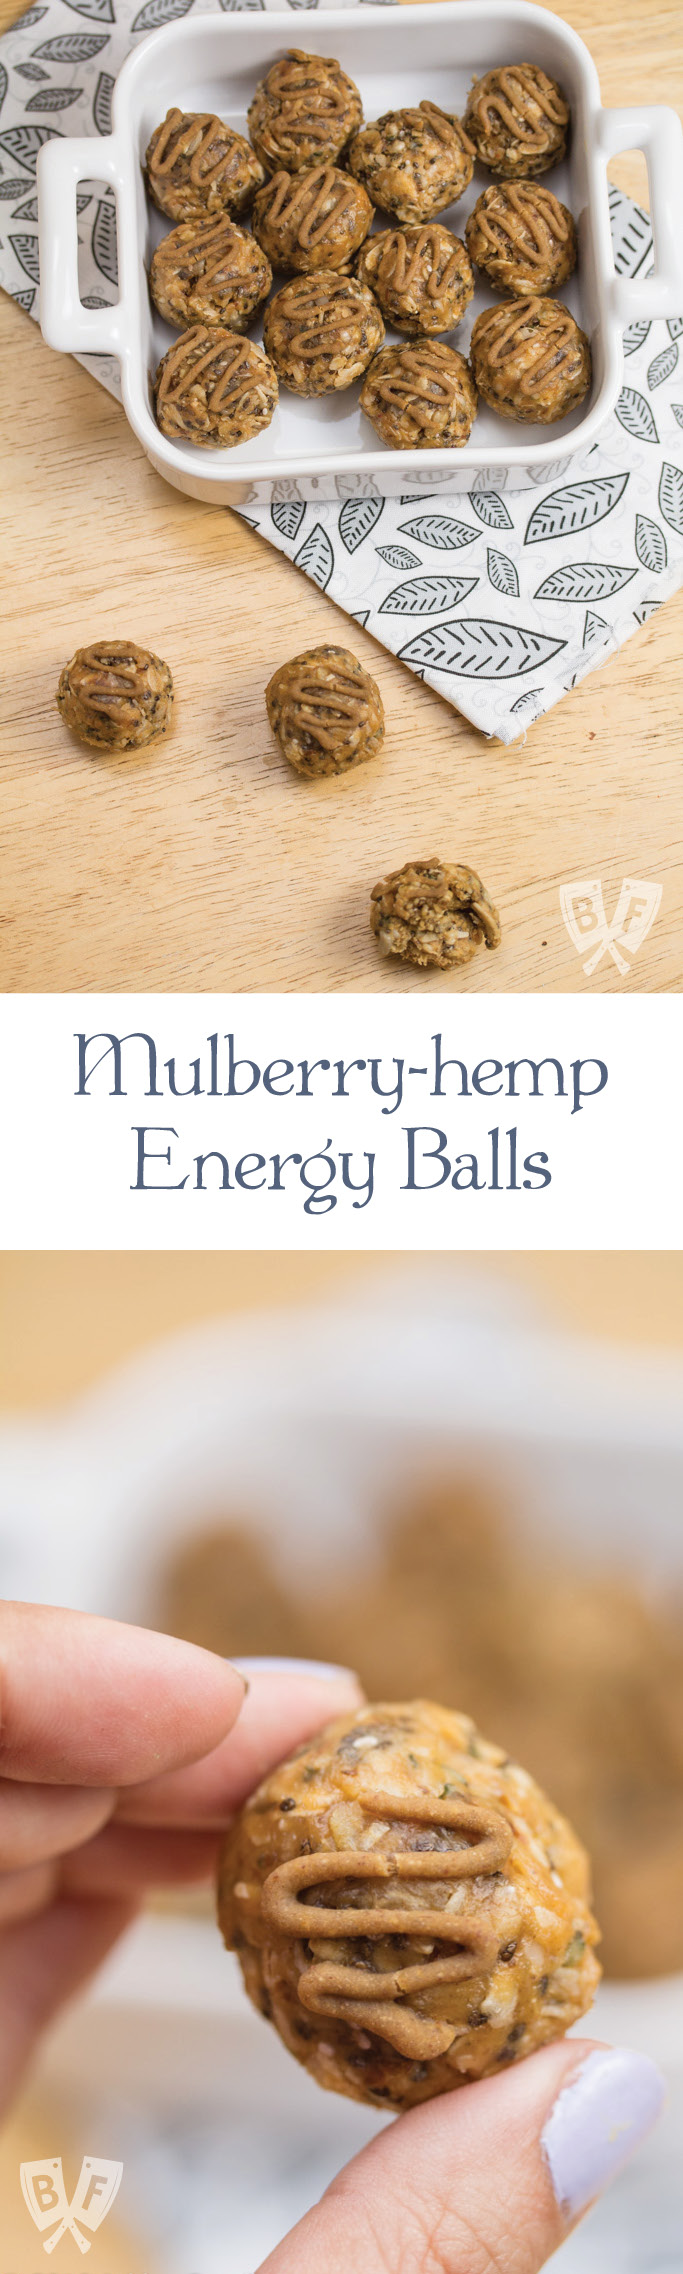 Mulberry-Hemp Energy Balls: These bites are jam-packed full of protein & superfoods – perfect for an energy boost when you're on-the-go.